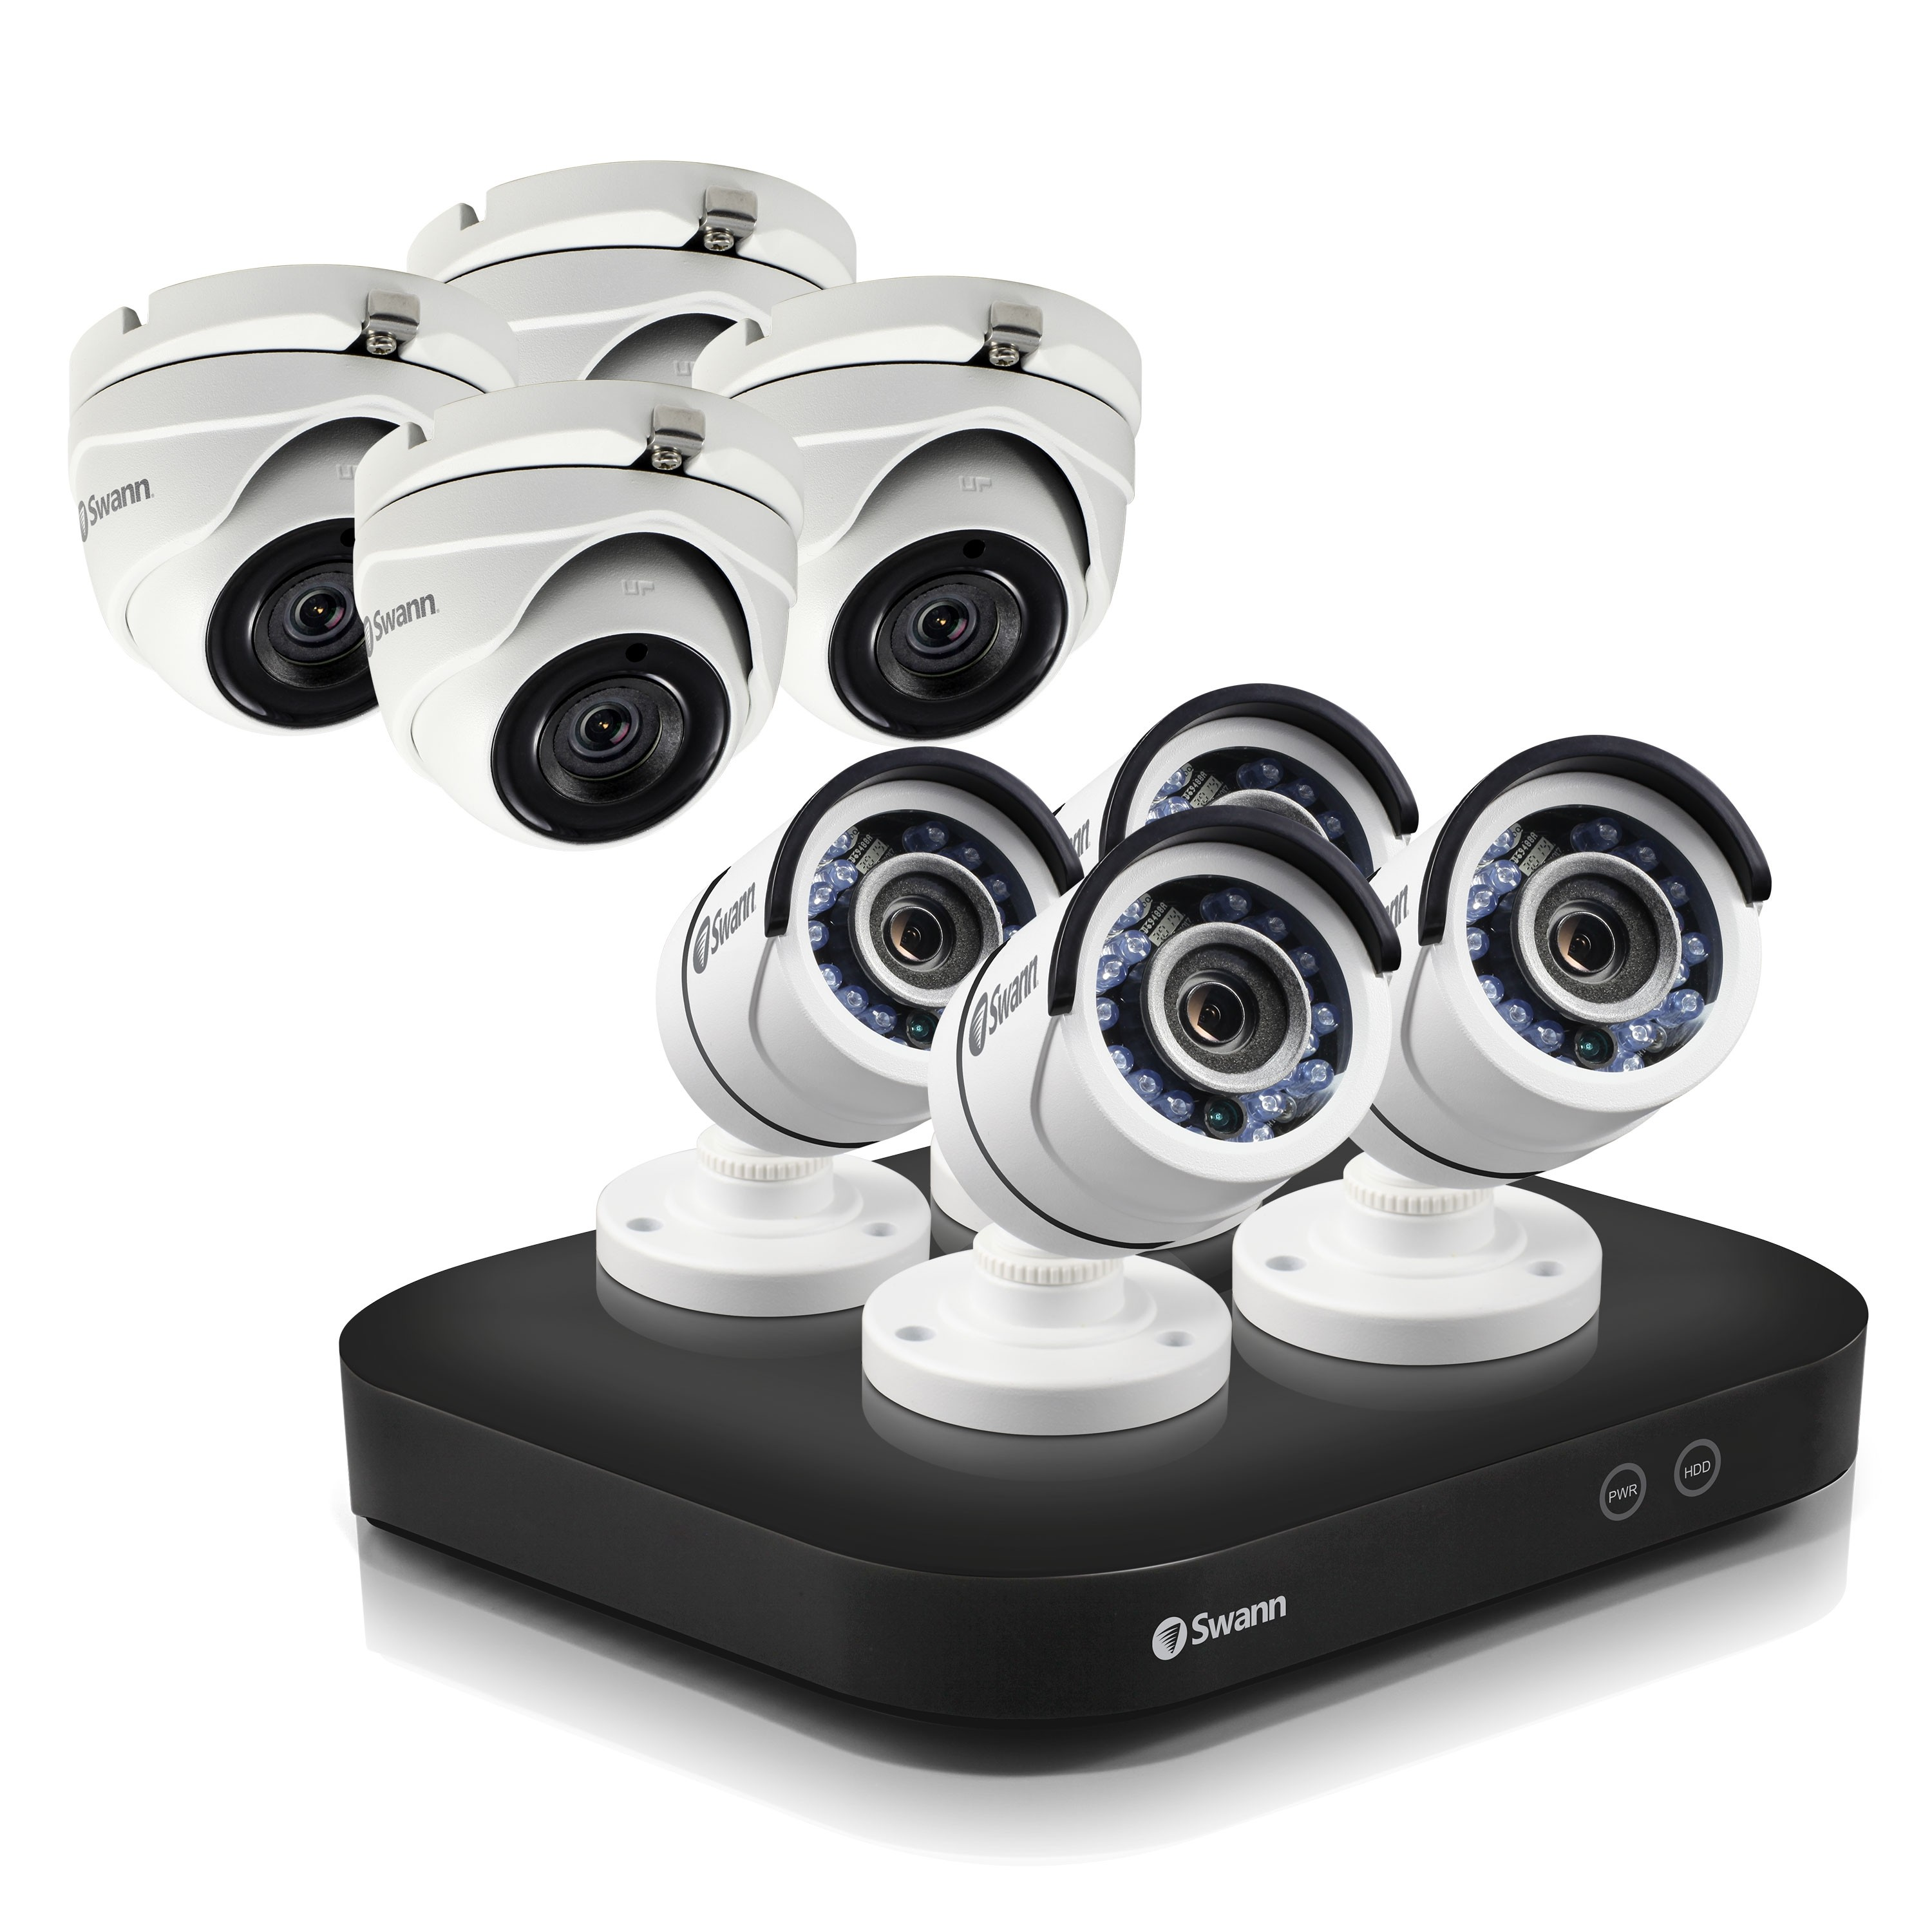 SODVK-849004D4 Swann 8 Channel Security System: 5MP Super HD DVR with 2TB HDD & 8 x 5MP Bullet & Dome Cameras -